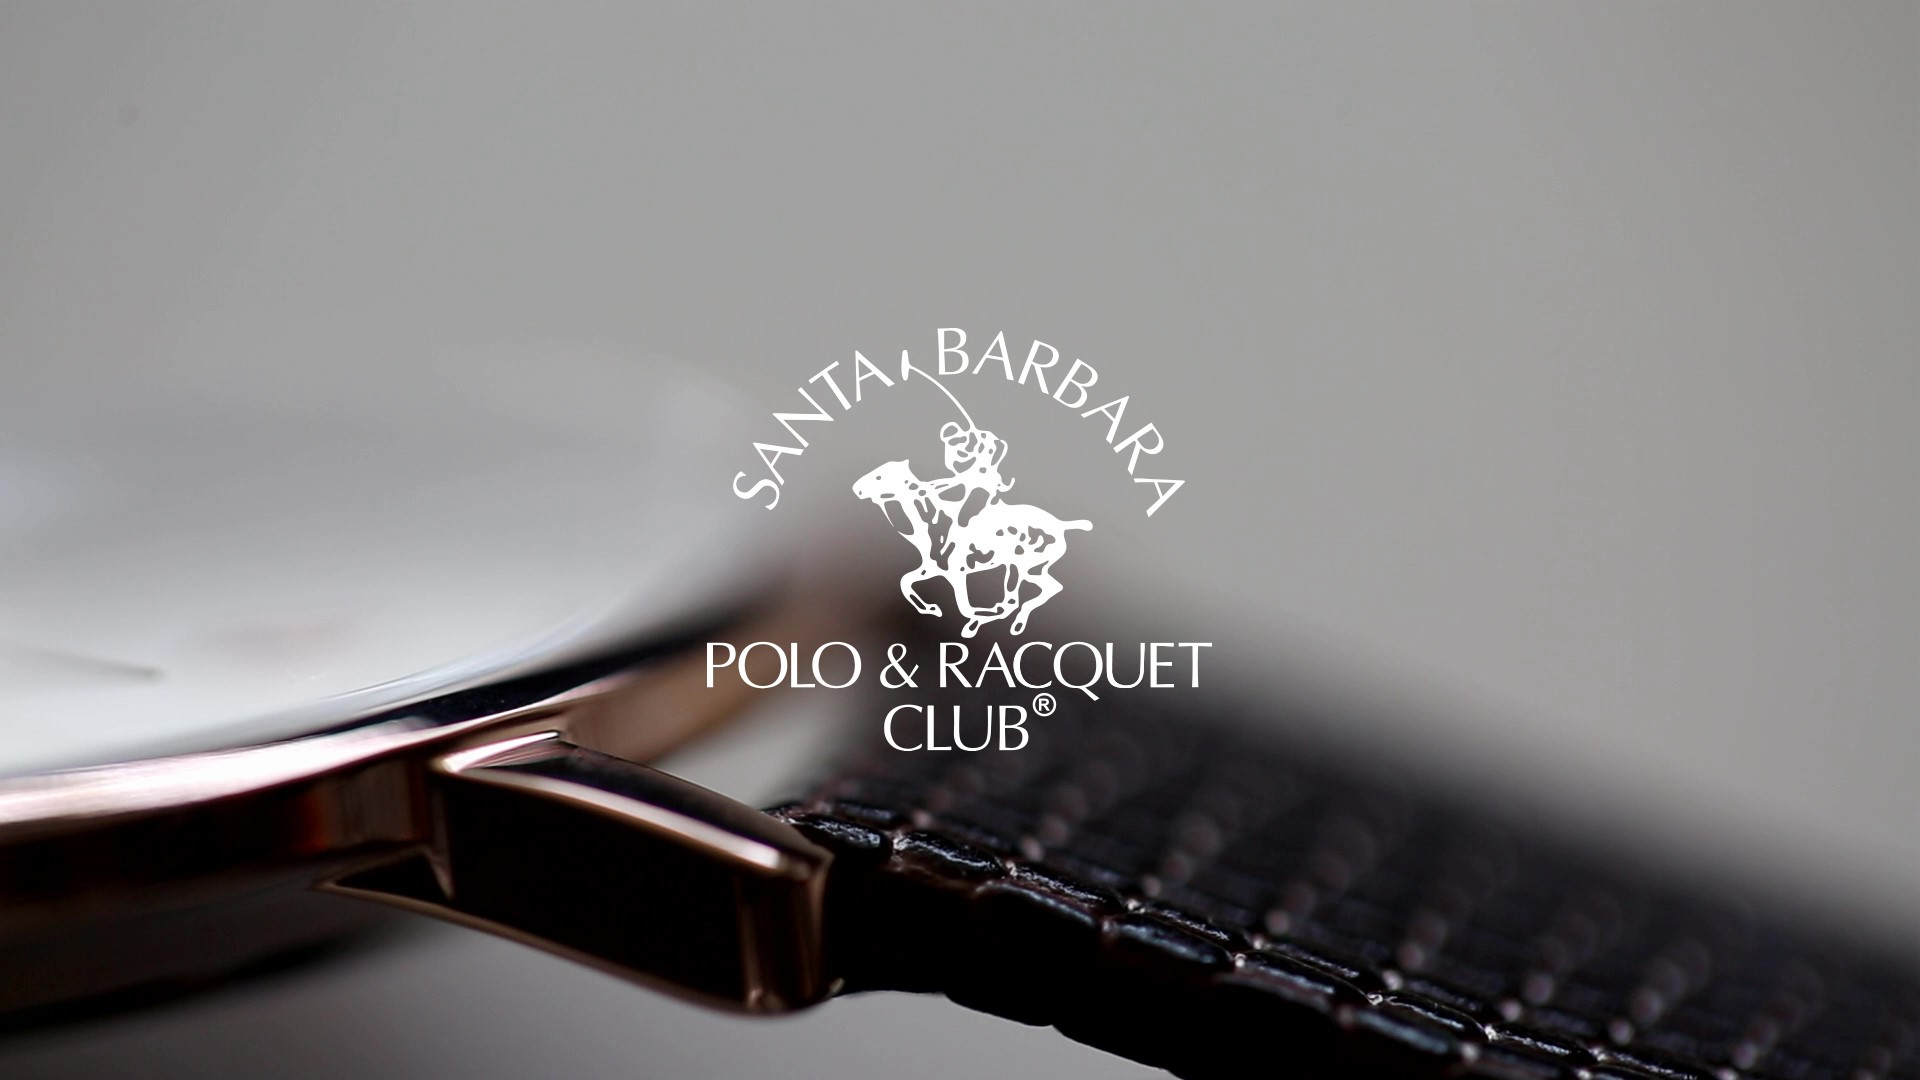 New items Santa Barbara Polo & Racquet Club